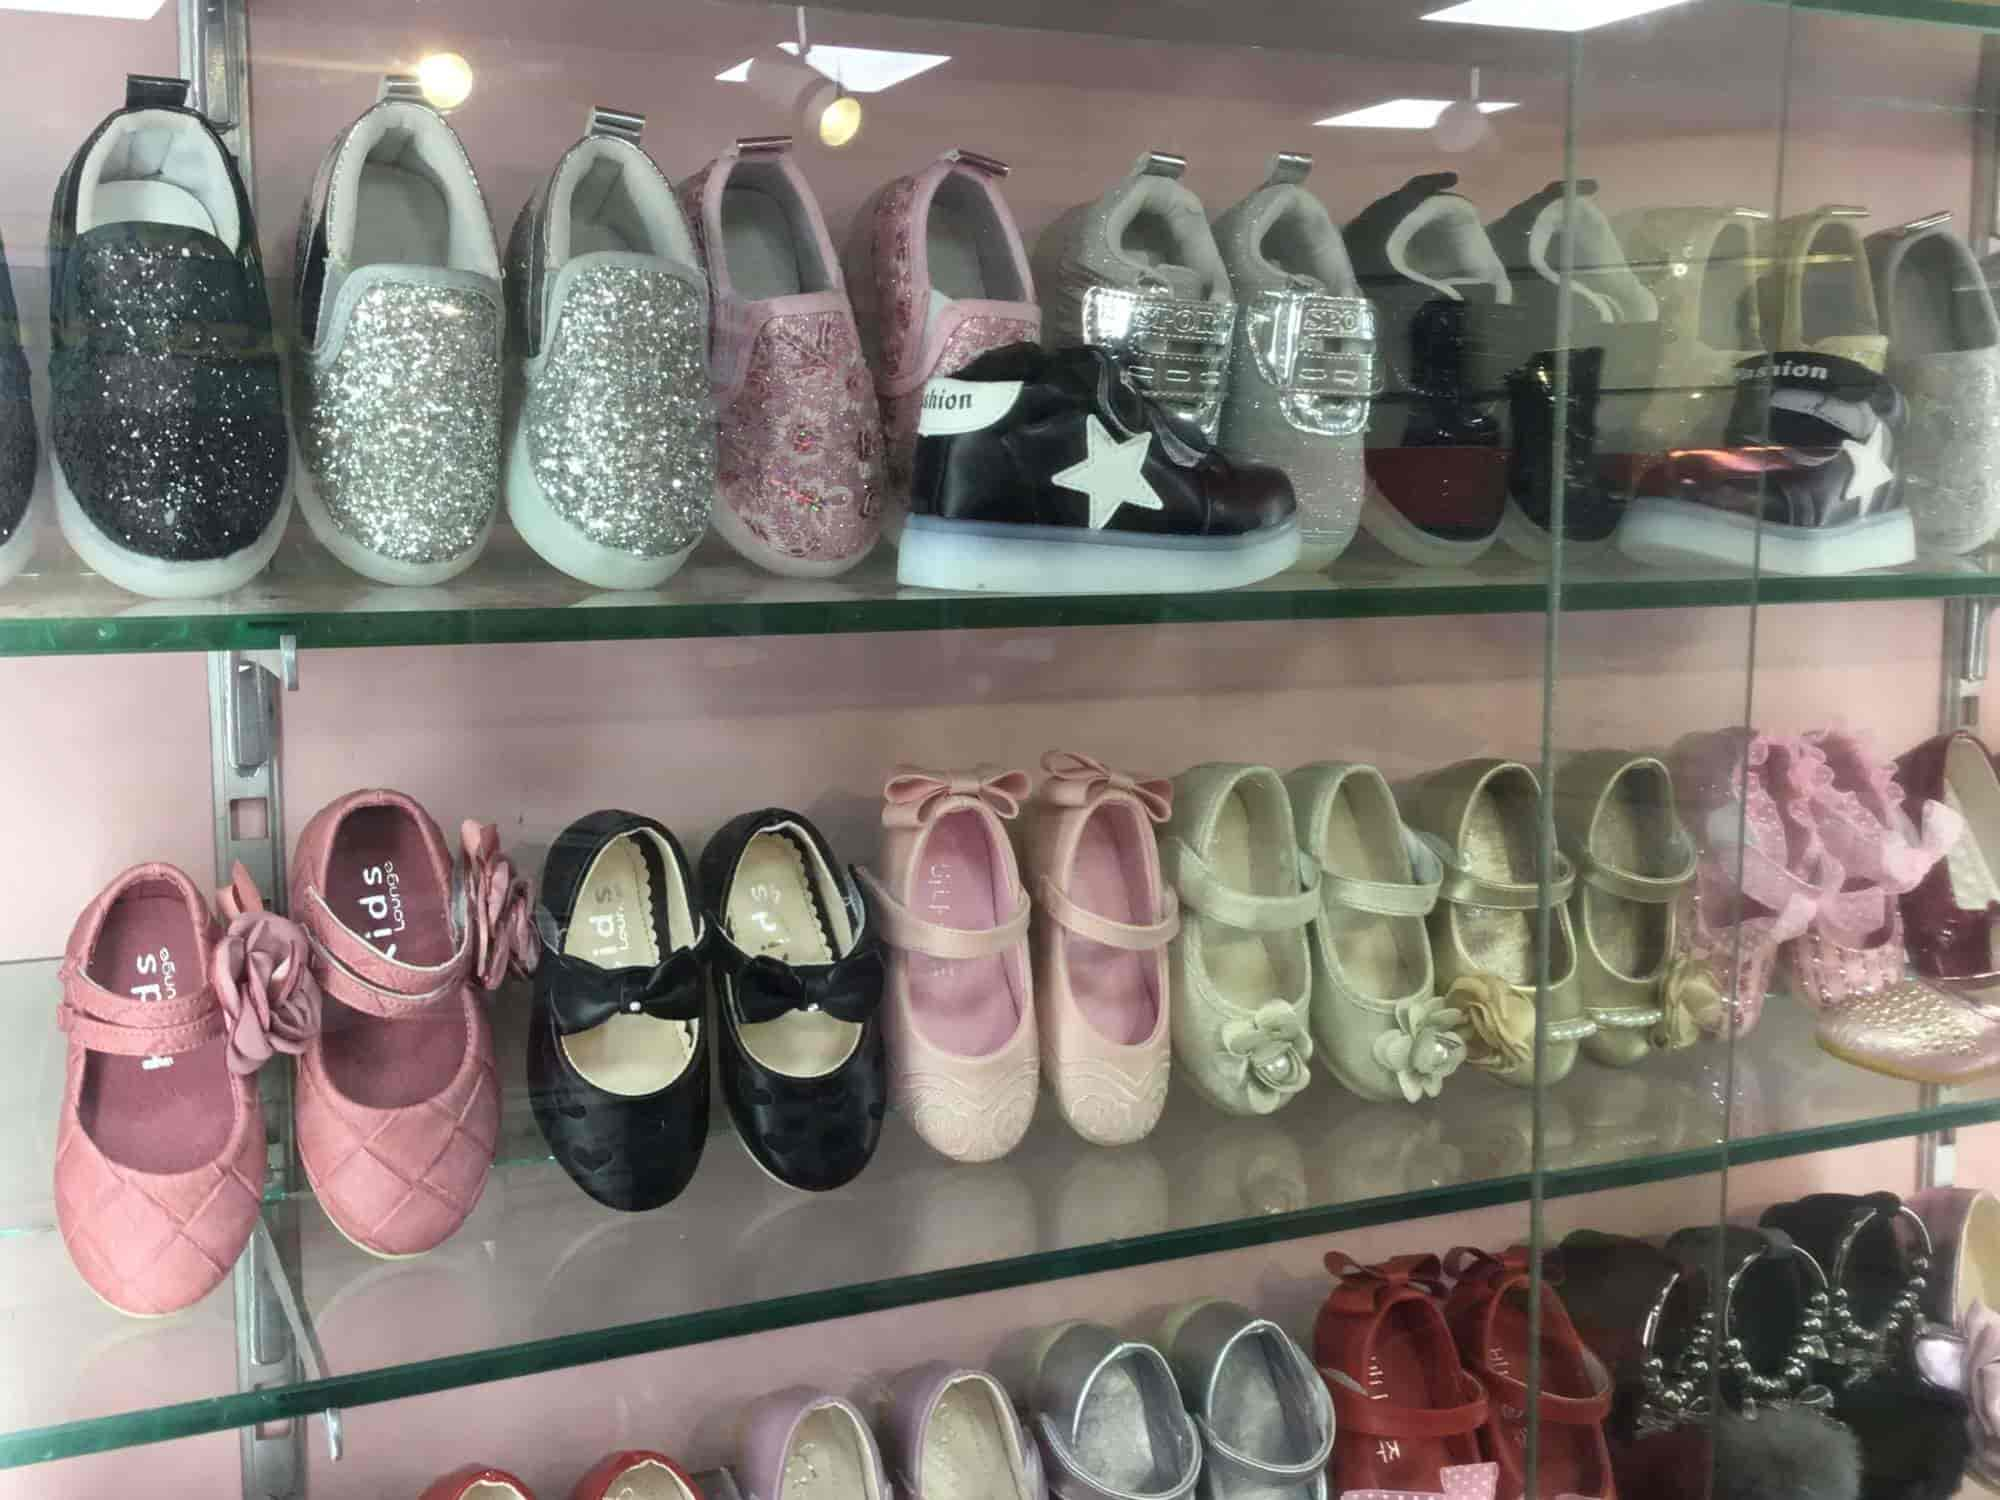 a3920a7c6 ... Sara Kids Footwear And Accessories Photos, Mumbai Central, Mumbai - Shoe  Dealers ...